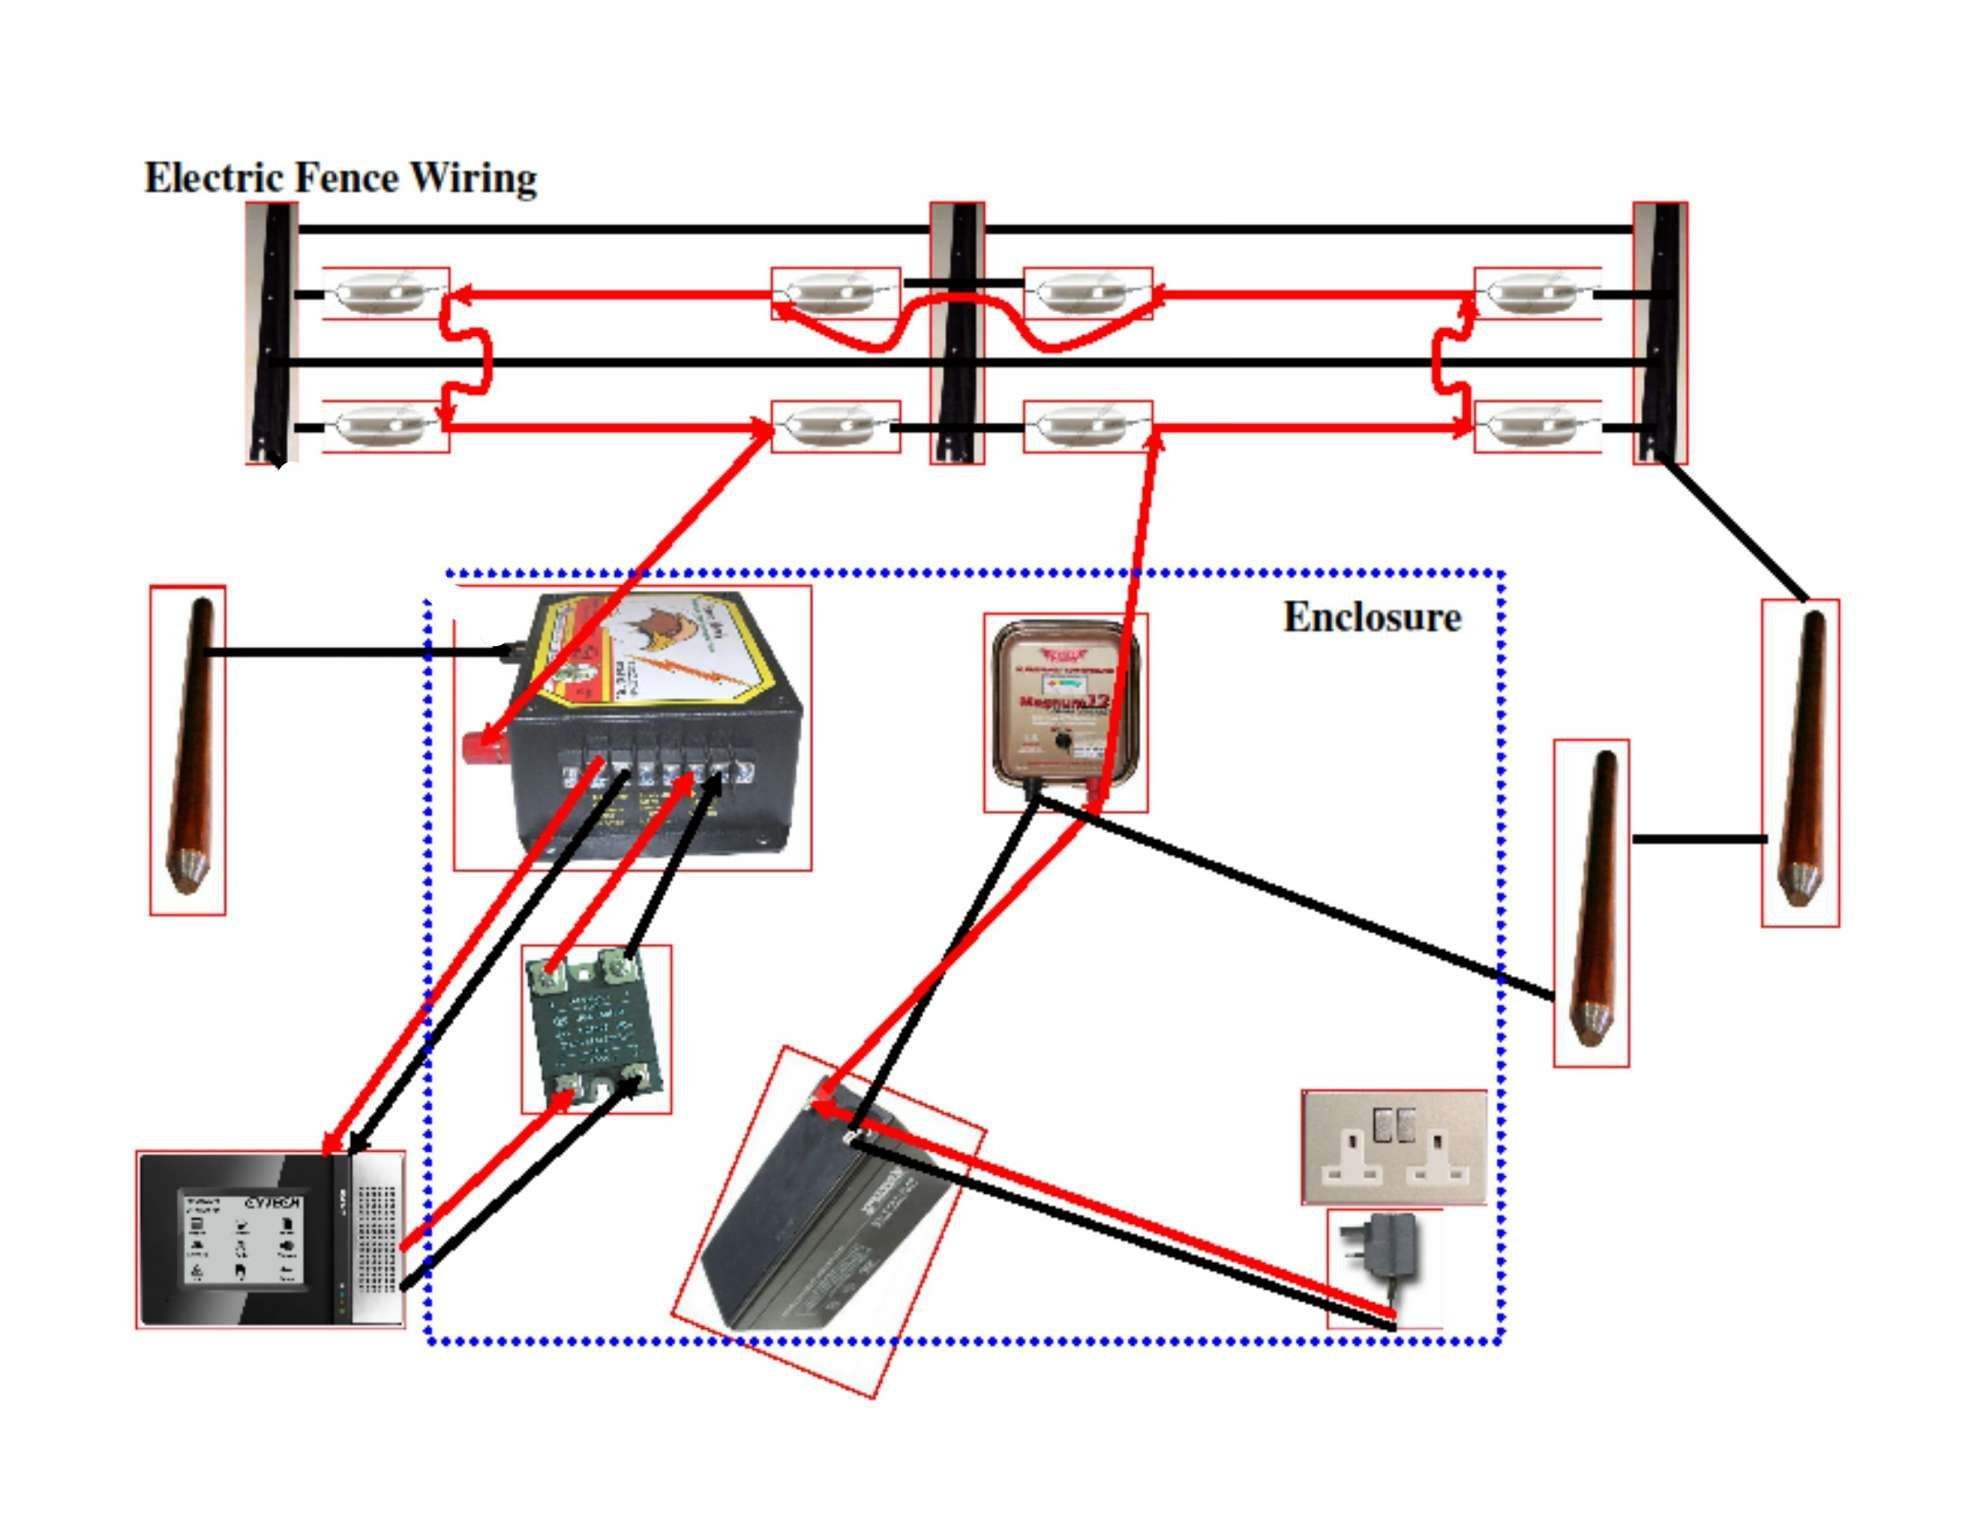 16 Electric Fence Wiring Diagram Wiring Diagram Wiringg Net Electric Fence Fence Installation Cost Dog Fence